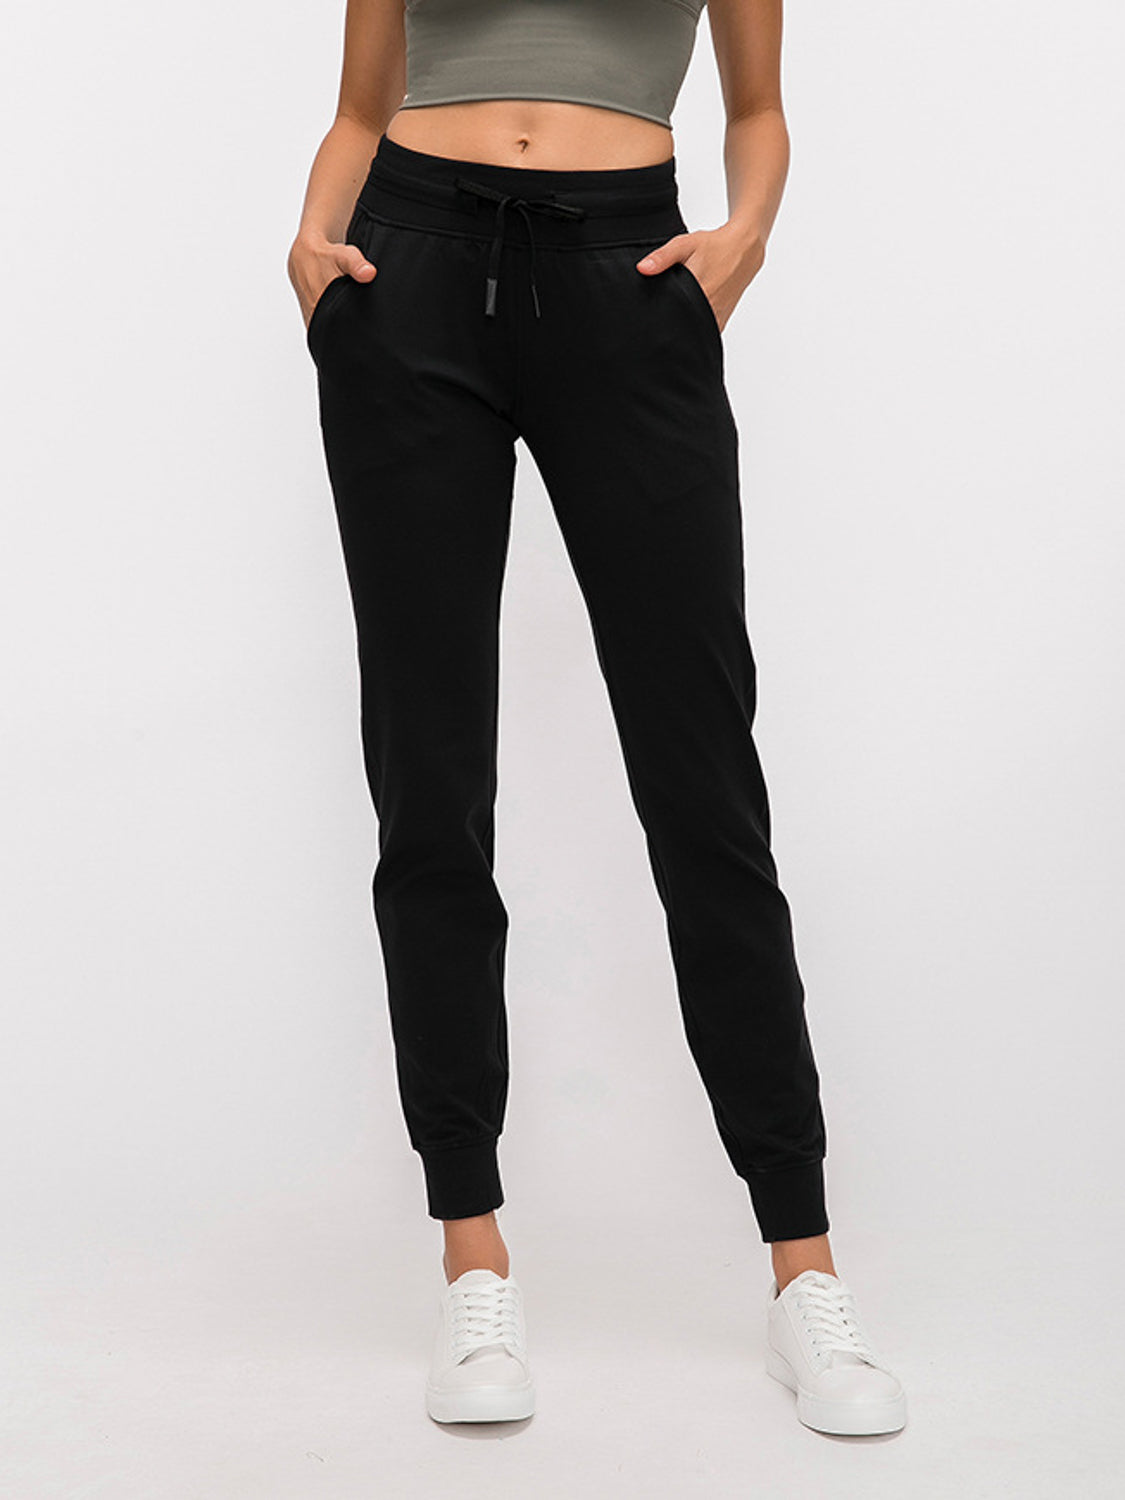 MOVI Classic Fitted Joggers (Black)